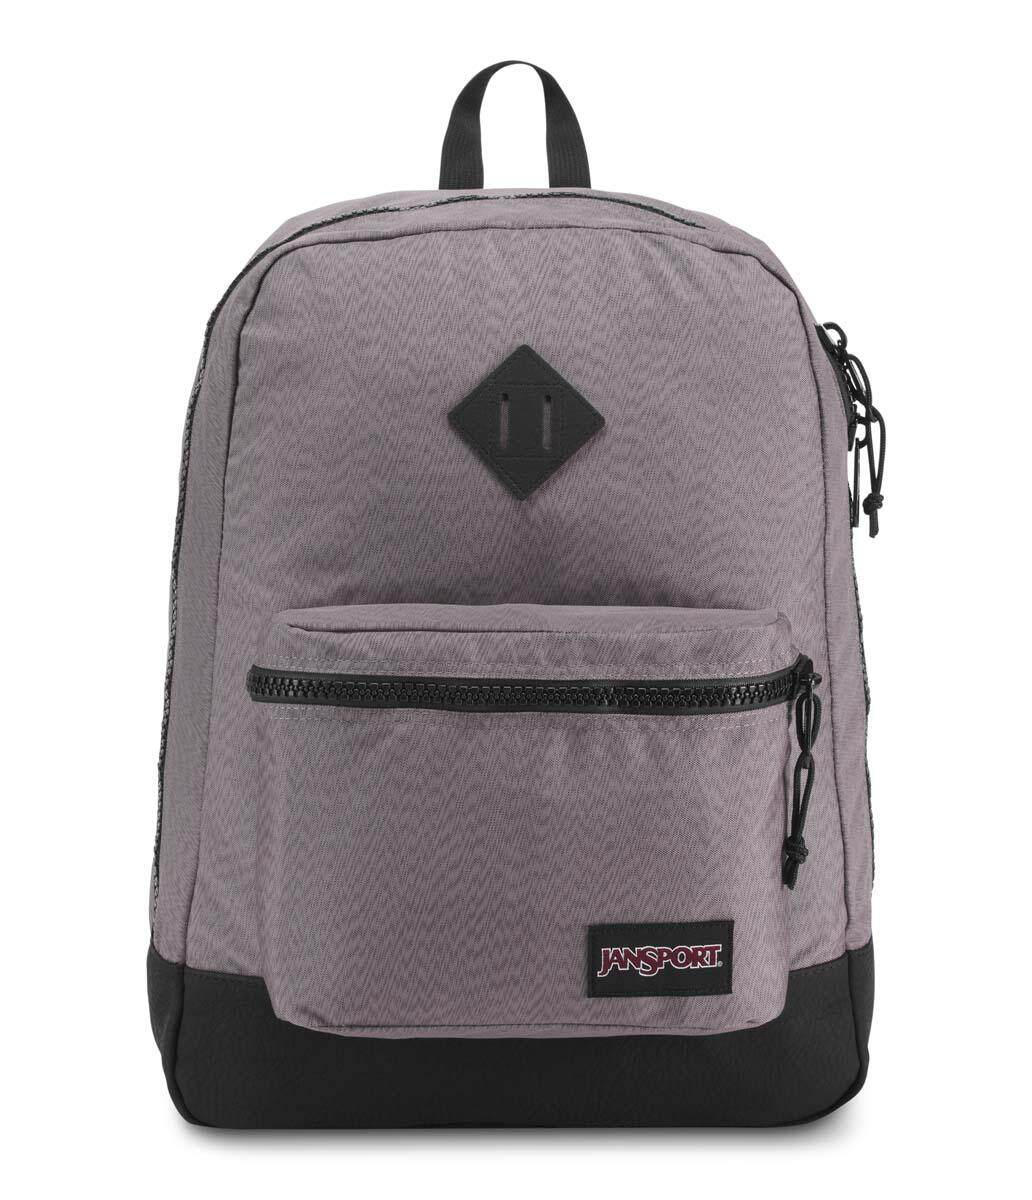 a593365d090 Jansport Super Fx Grey Optical Zig Zag Backpack - 25L